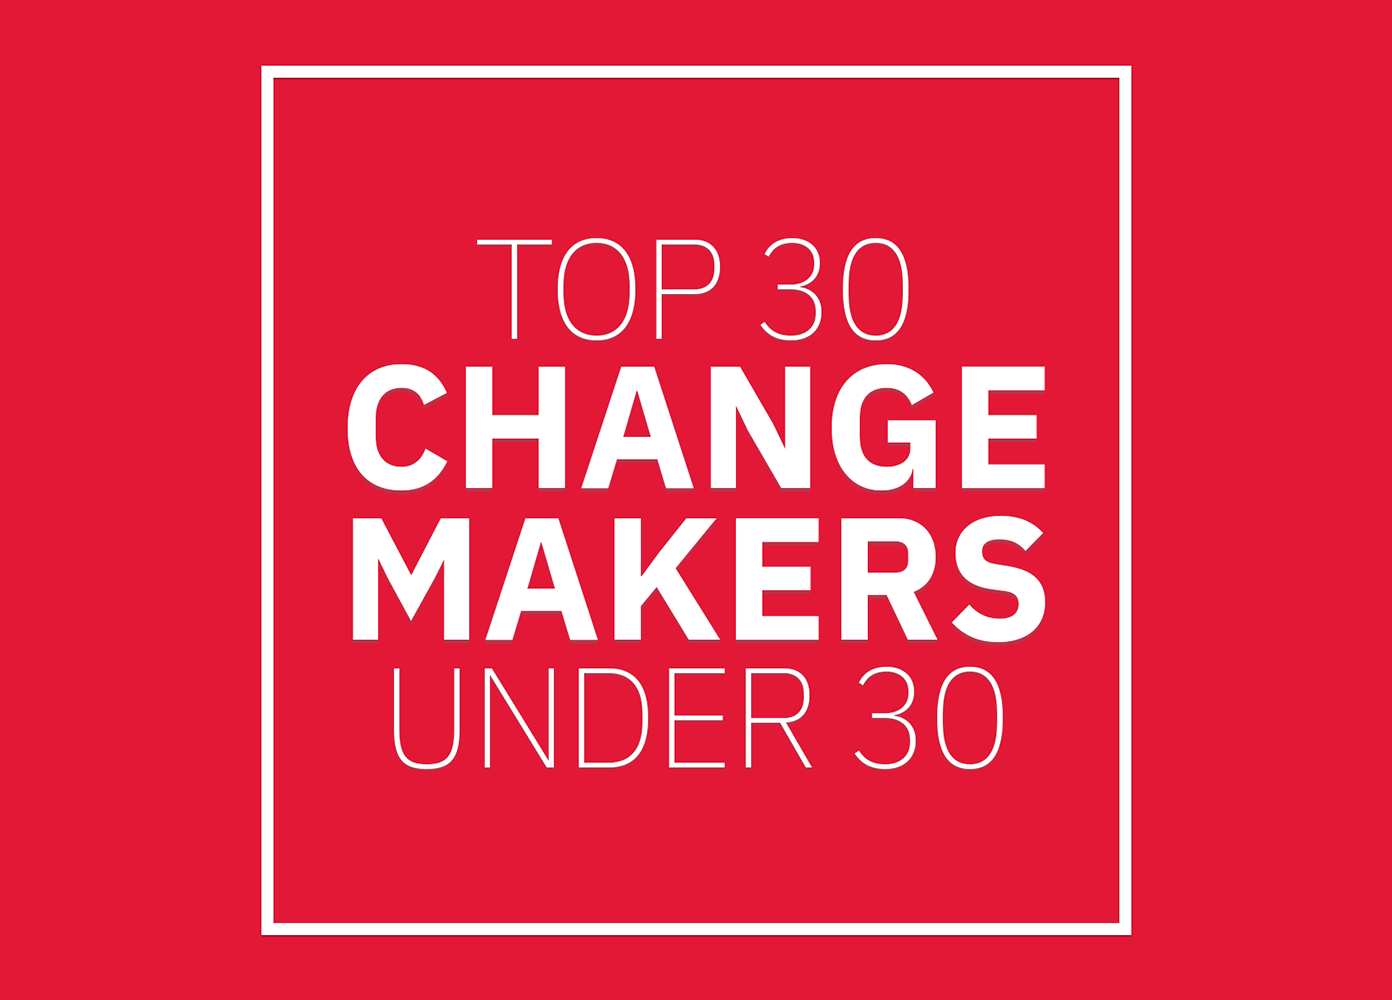 York releases inaugural list of Top 30 Changemakers Under 30